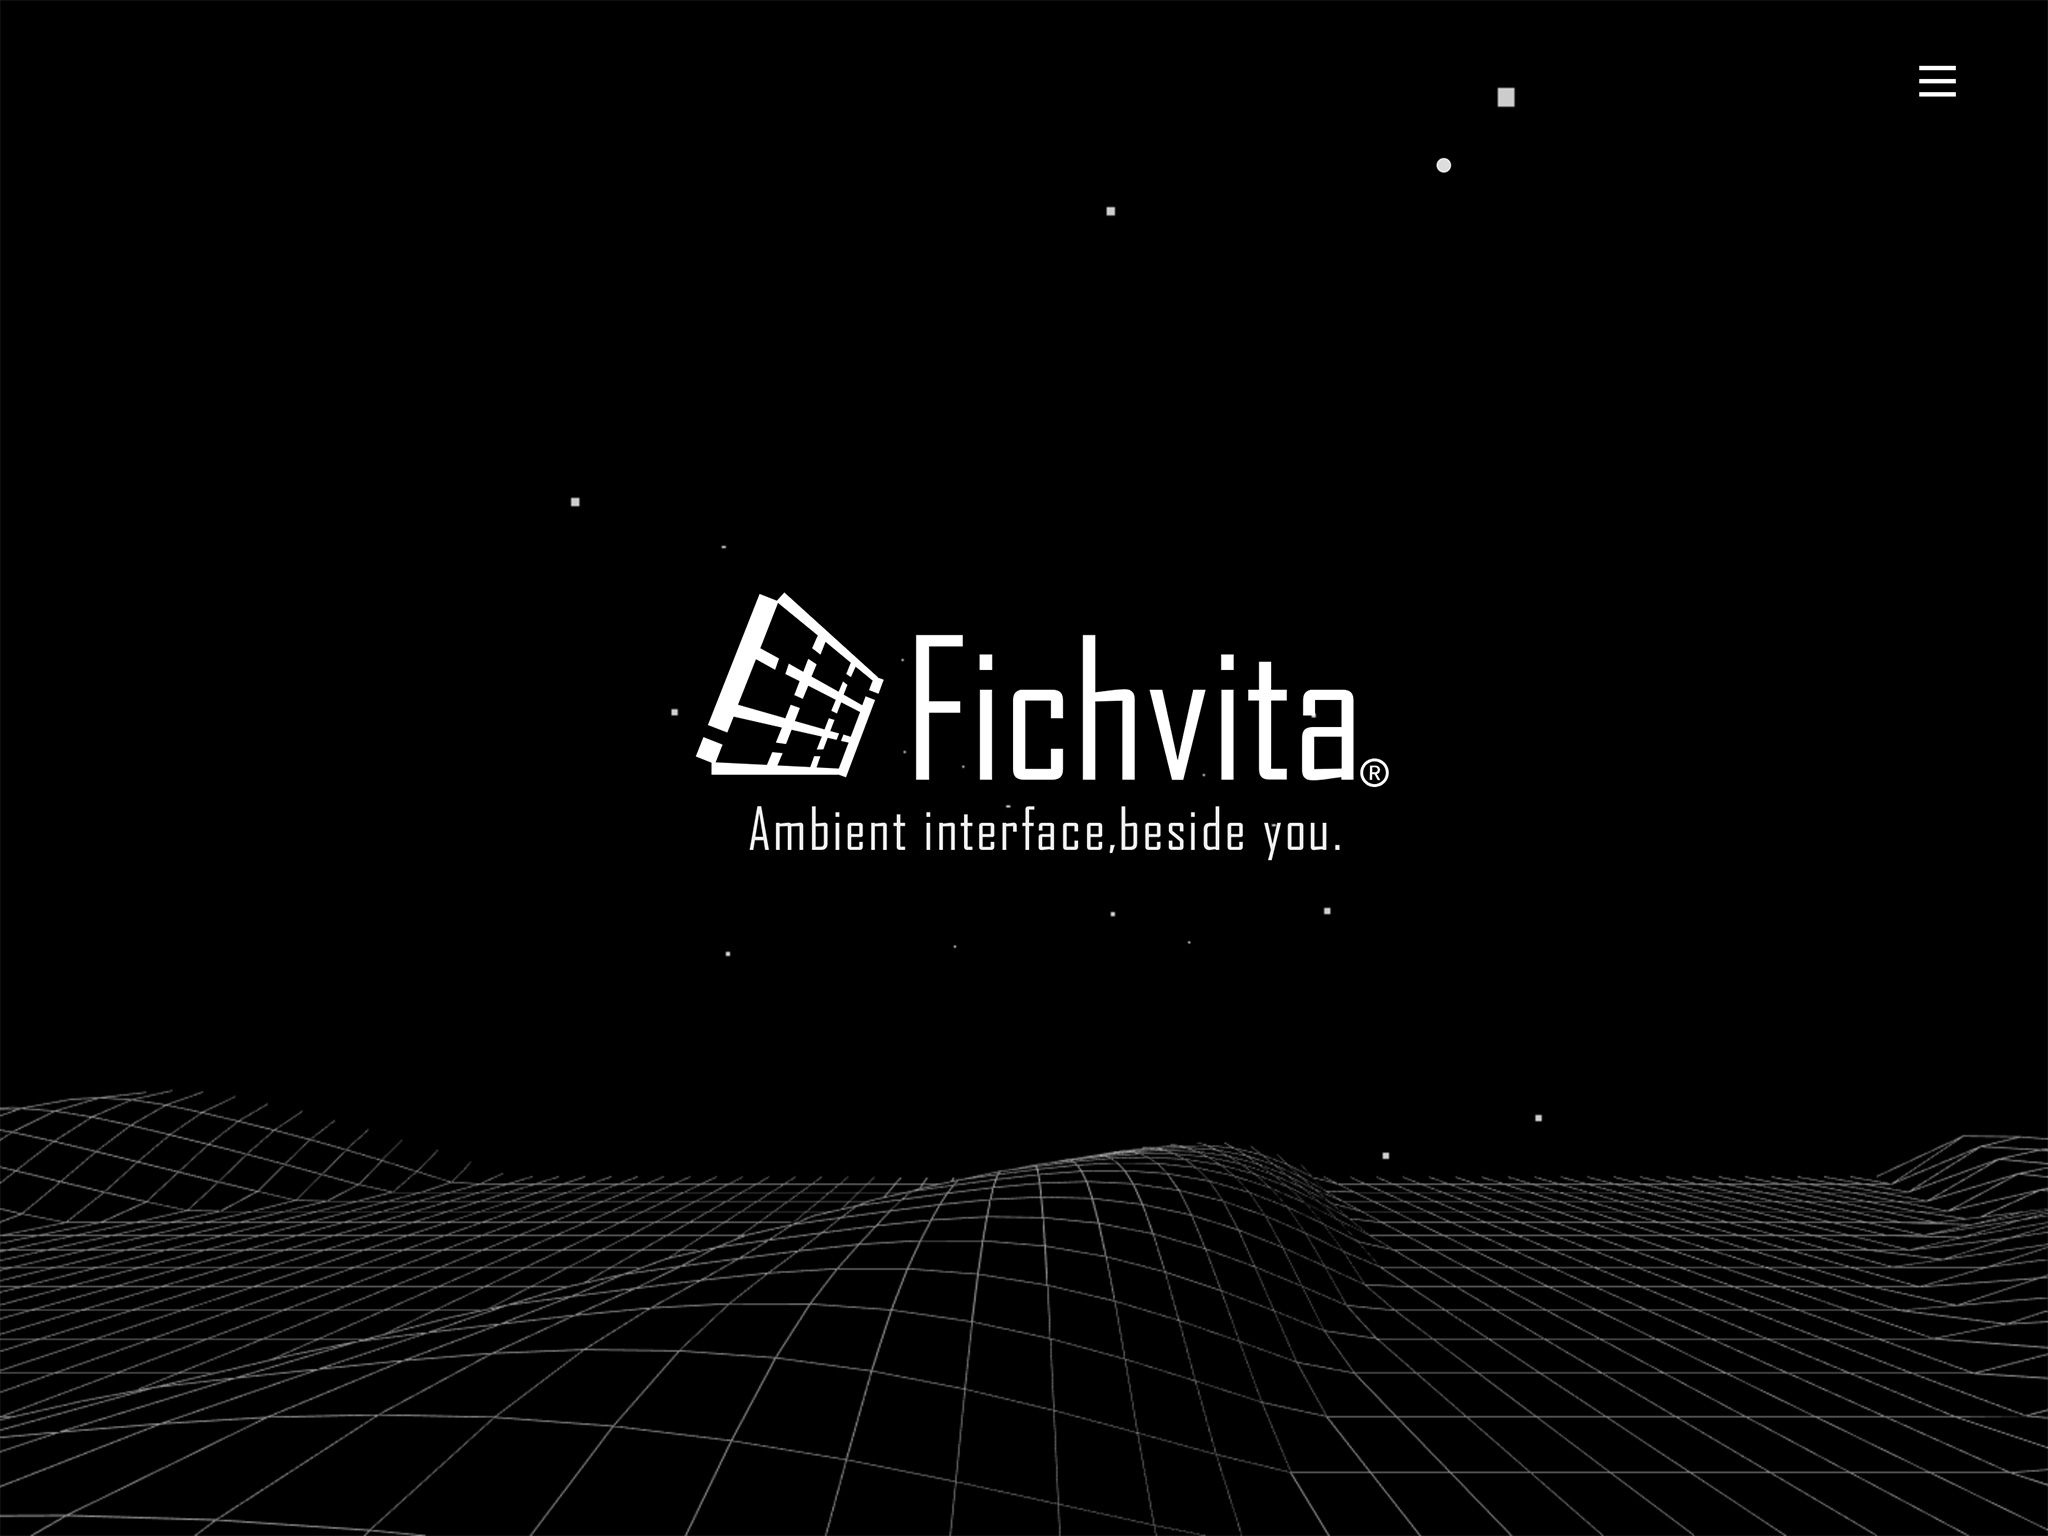 Fichvita Ambient interface,beside you.